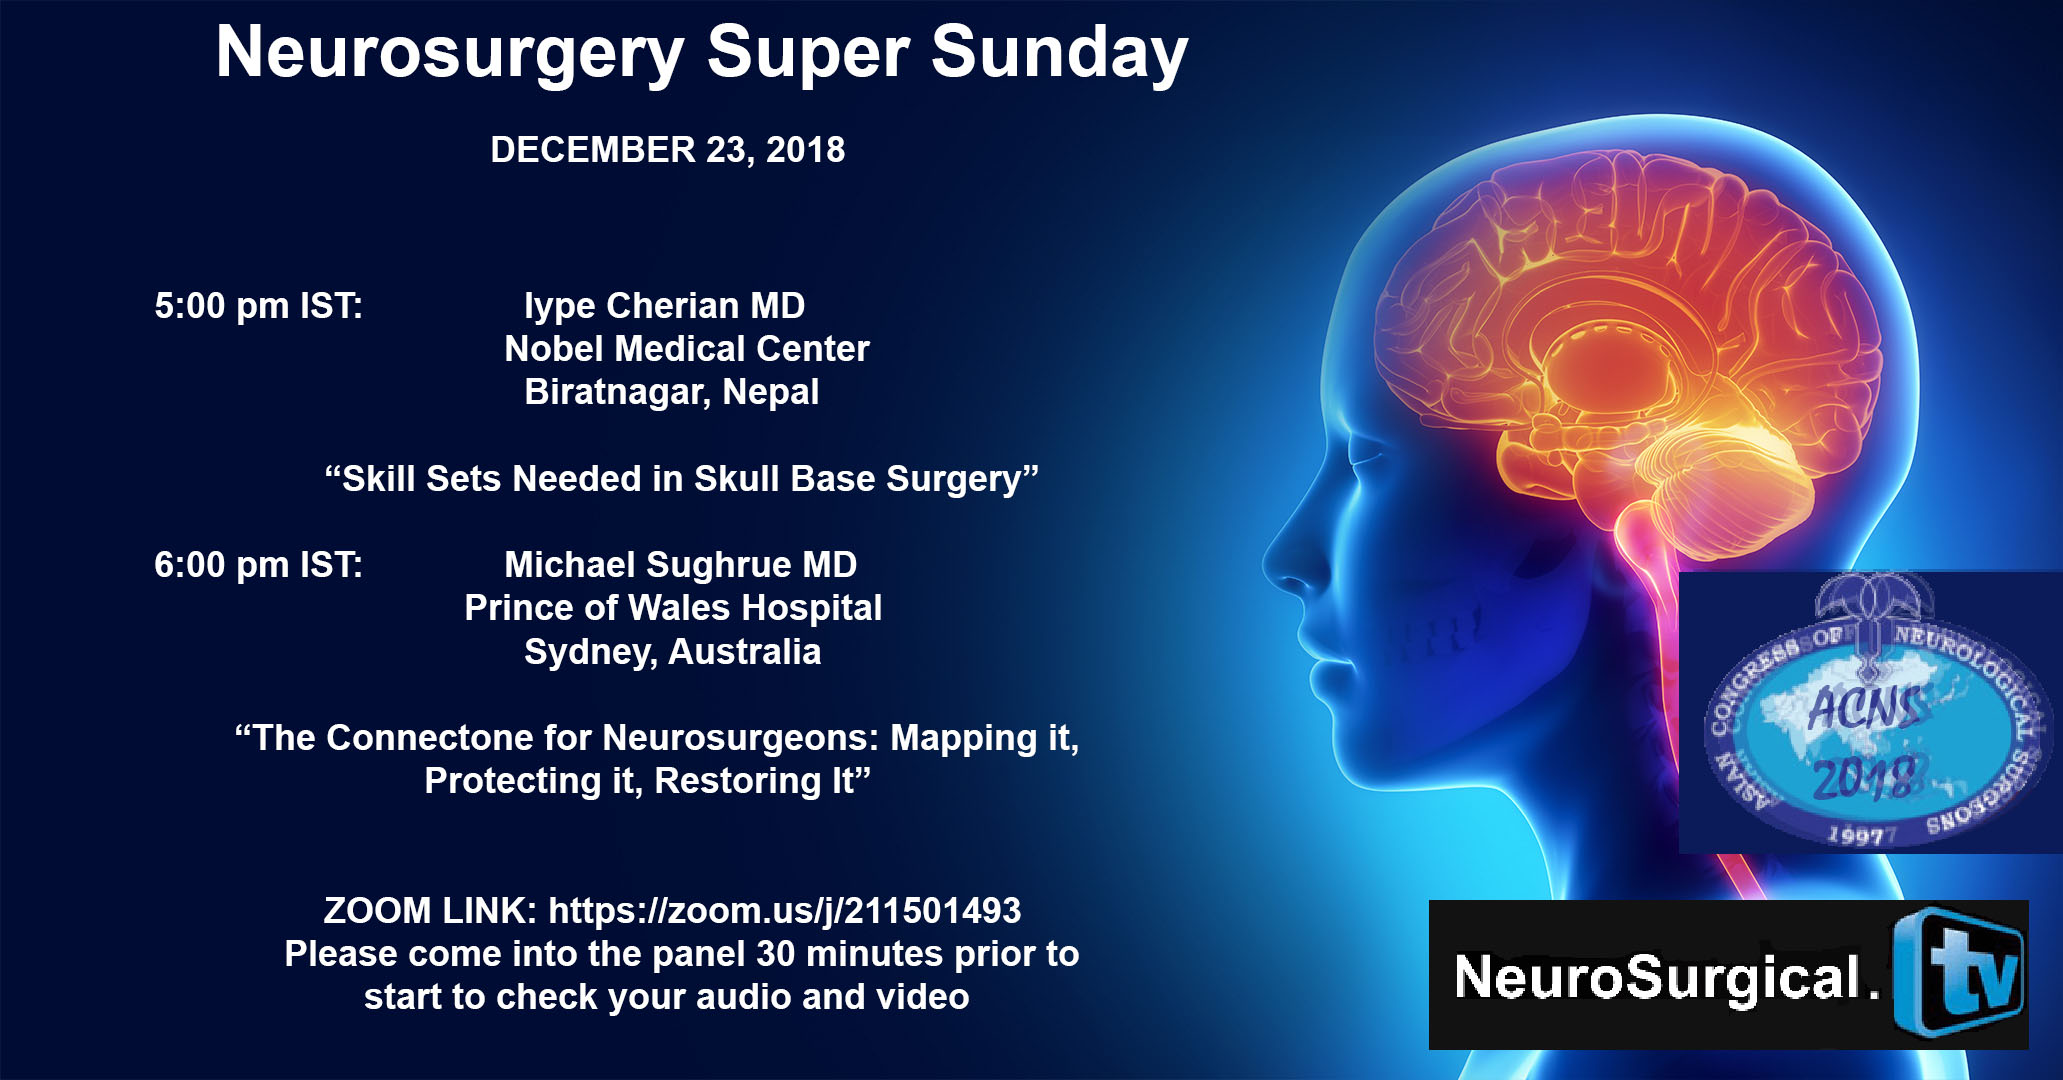 Recorded LIVE, today:  Neurosurgery Super Sunday with two Presentations: Skull Base Basics, and Connecting Connectones in Neurosurgery